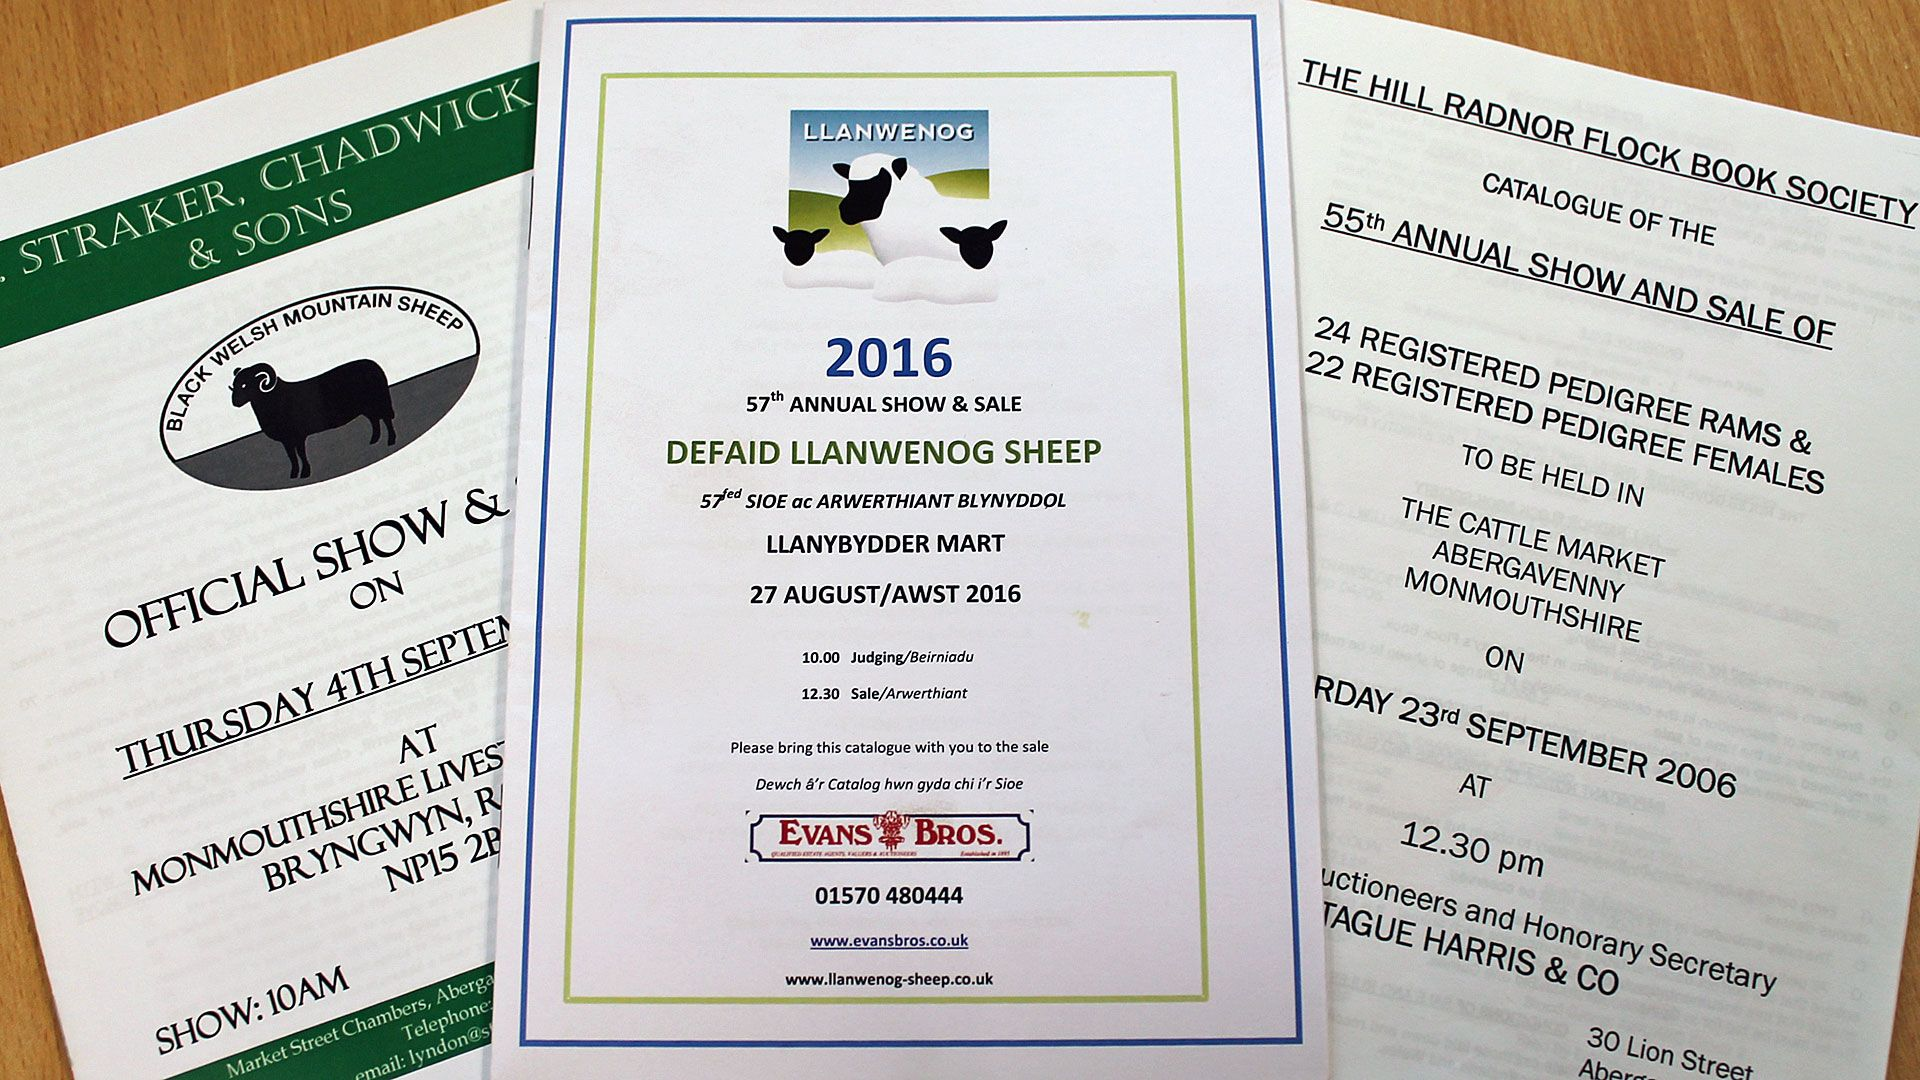 Hill Radnor, Llanwennog and Black Welsh Mountain rare breed sale booklets